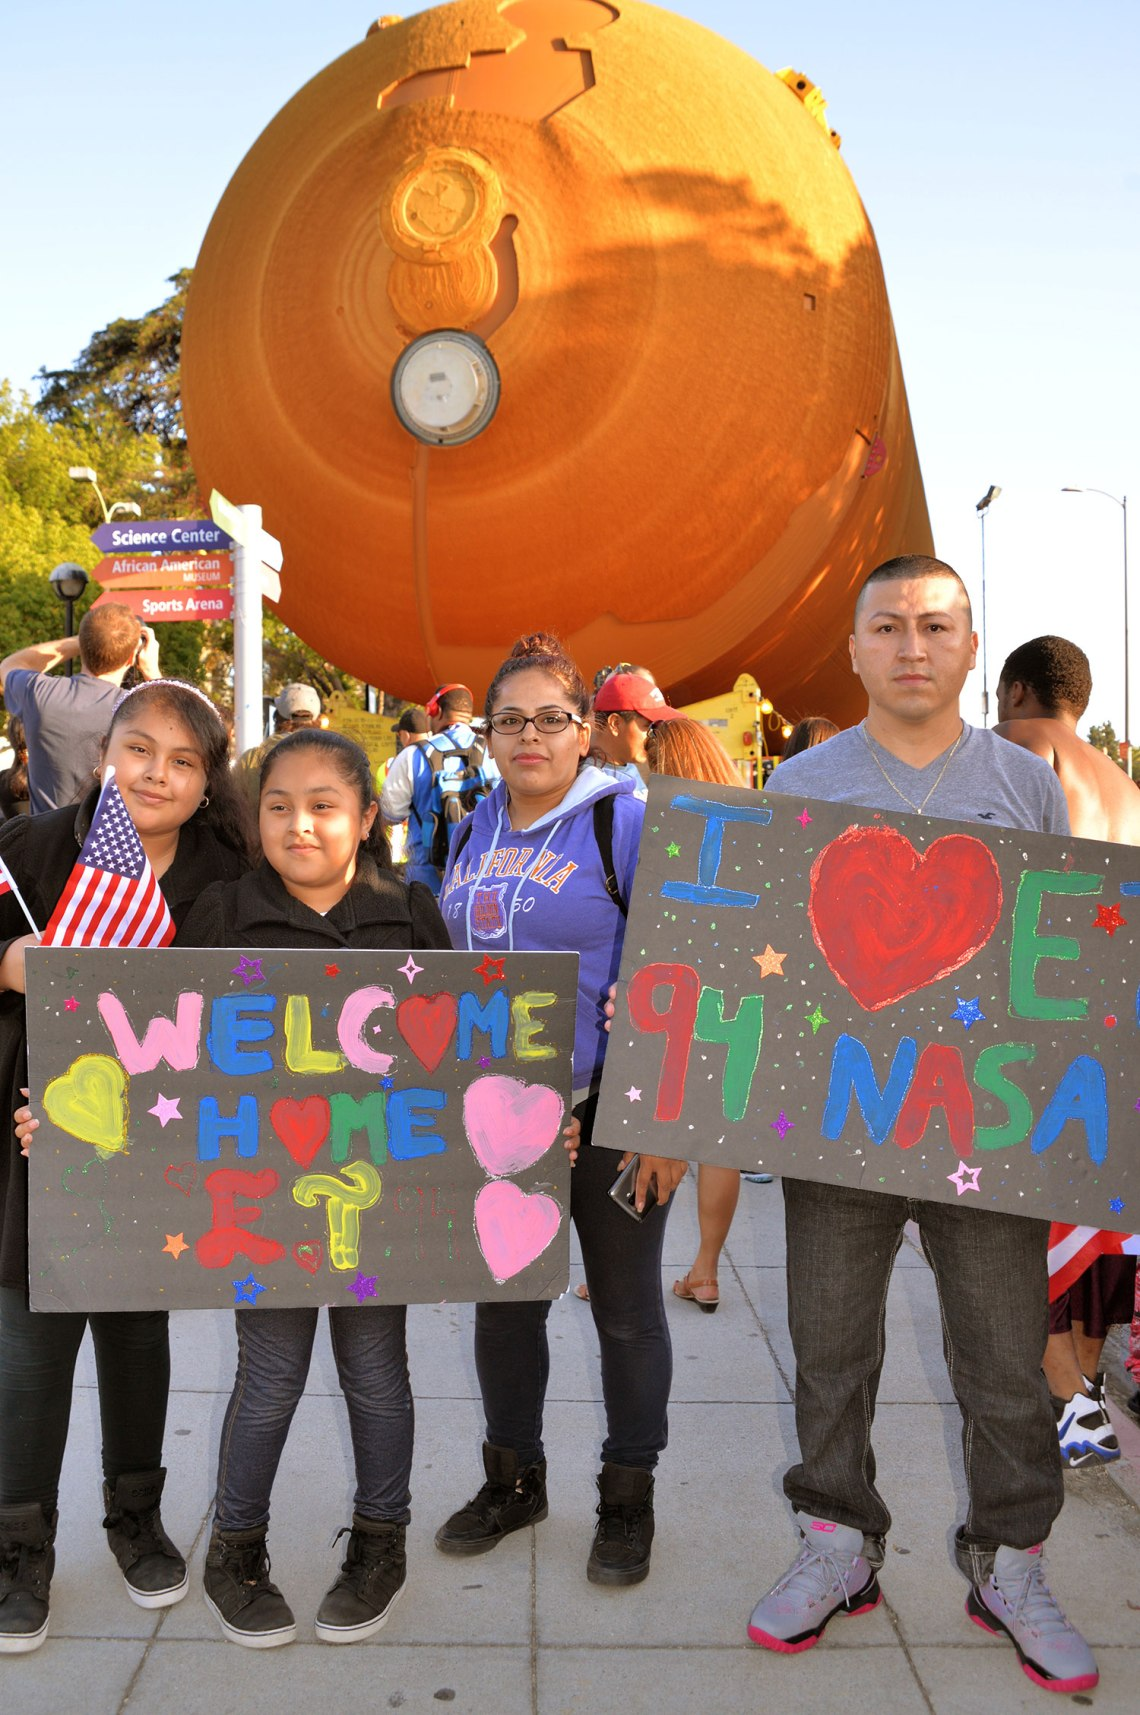 ET-94 received a warm welcome to L.A. as thousands came out to cheer on the space artifact during its move through the city. Credit: Julian Leek/JNN